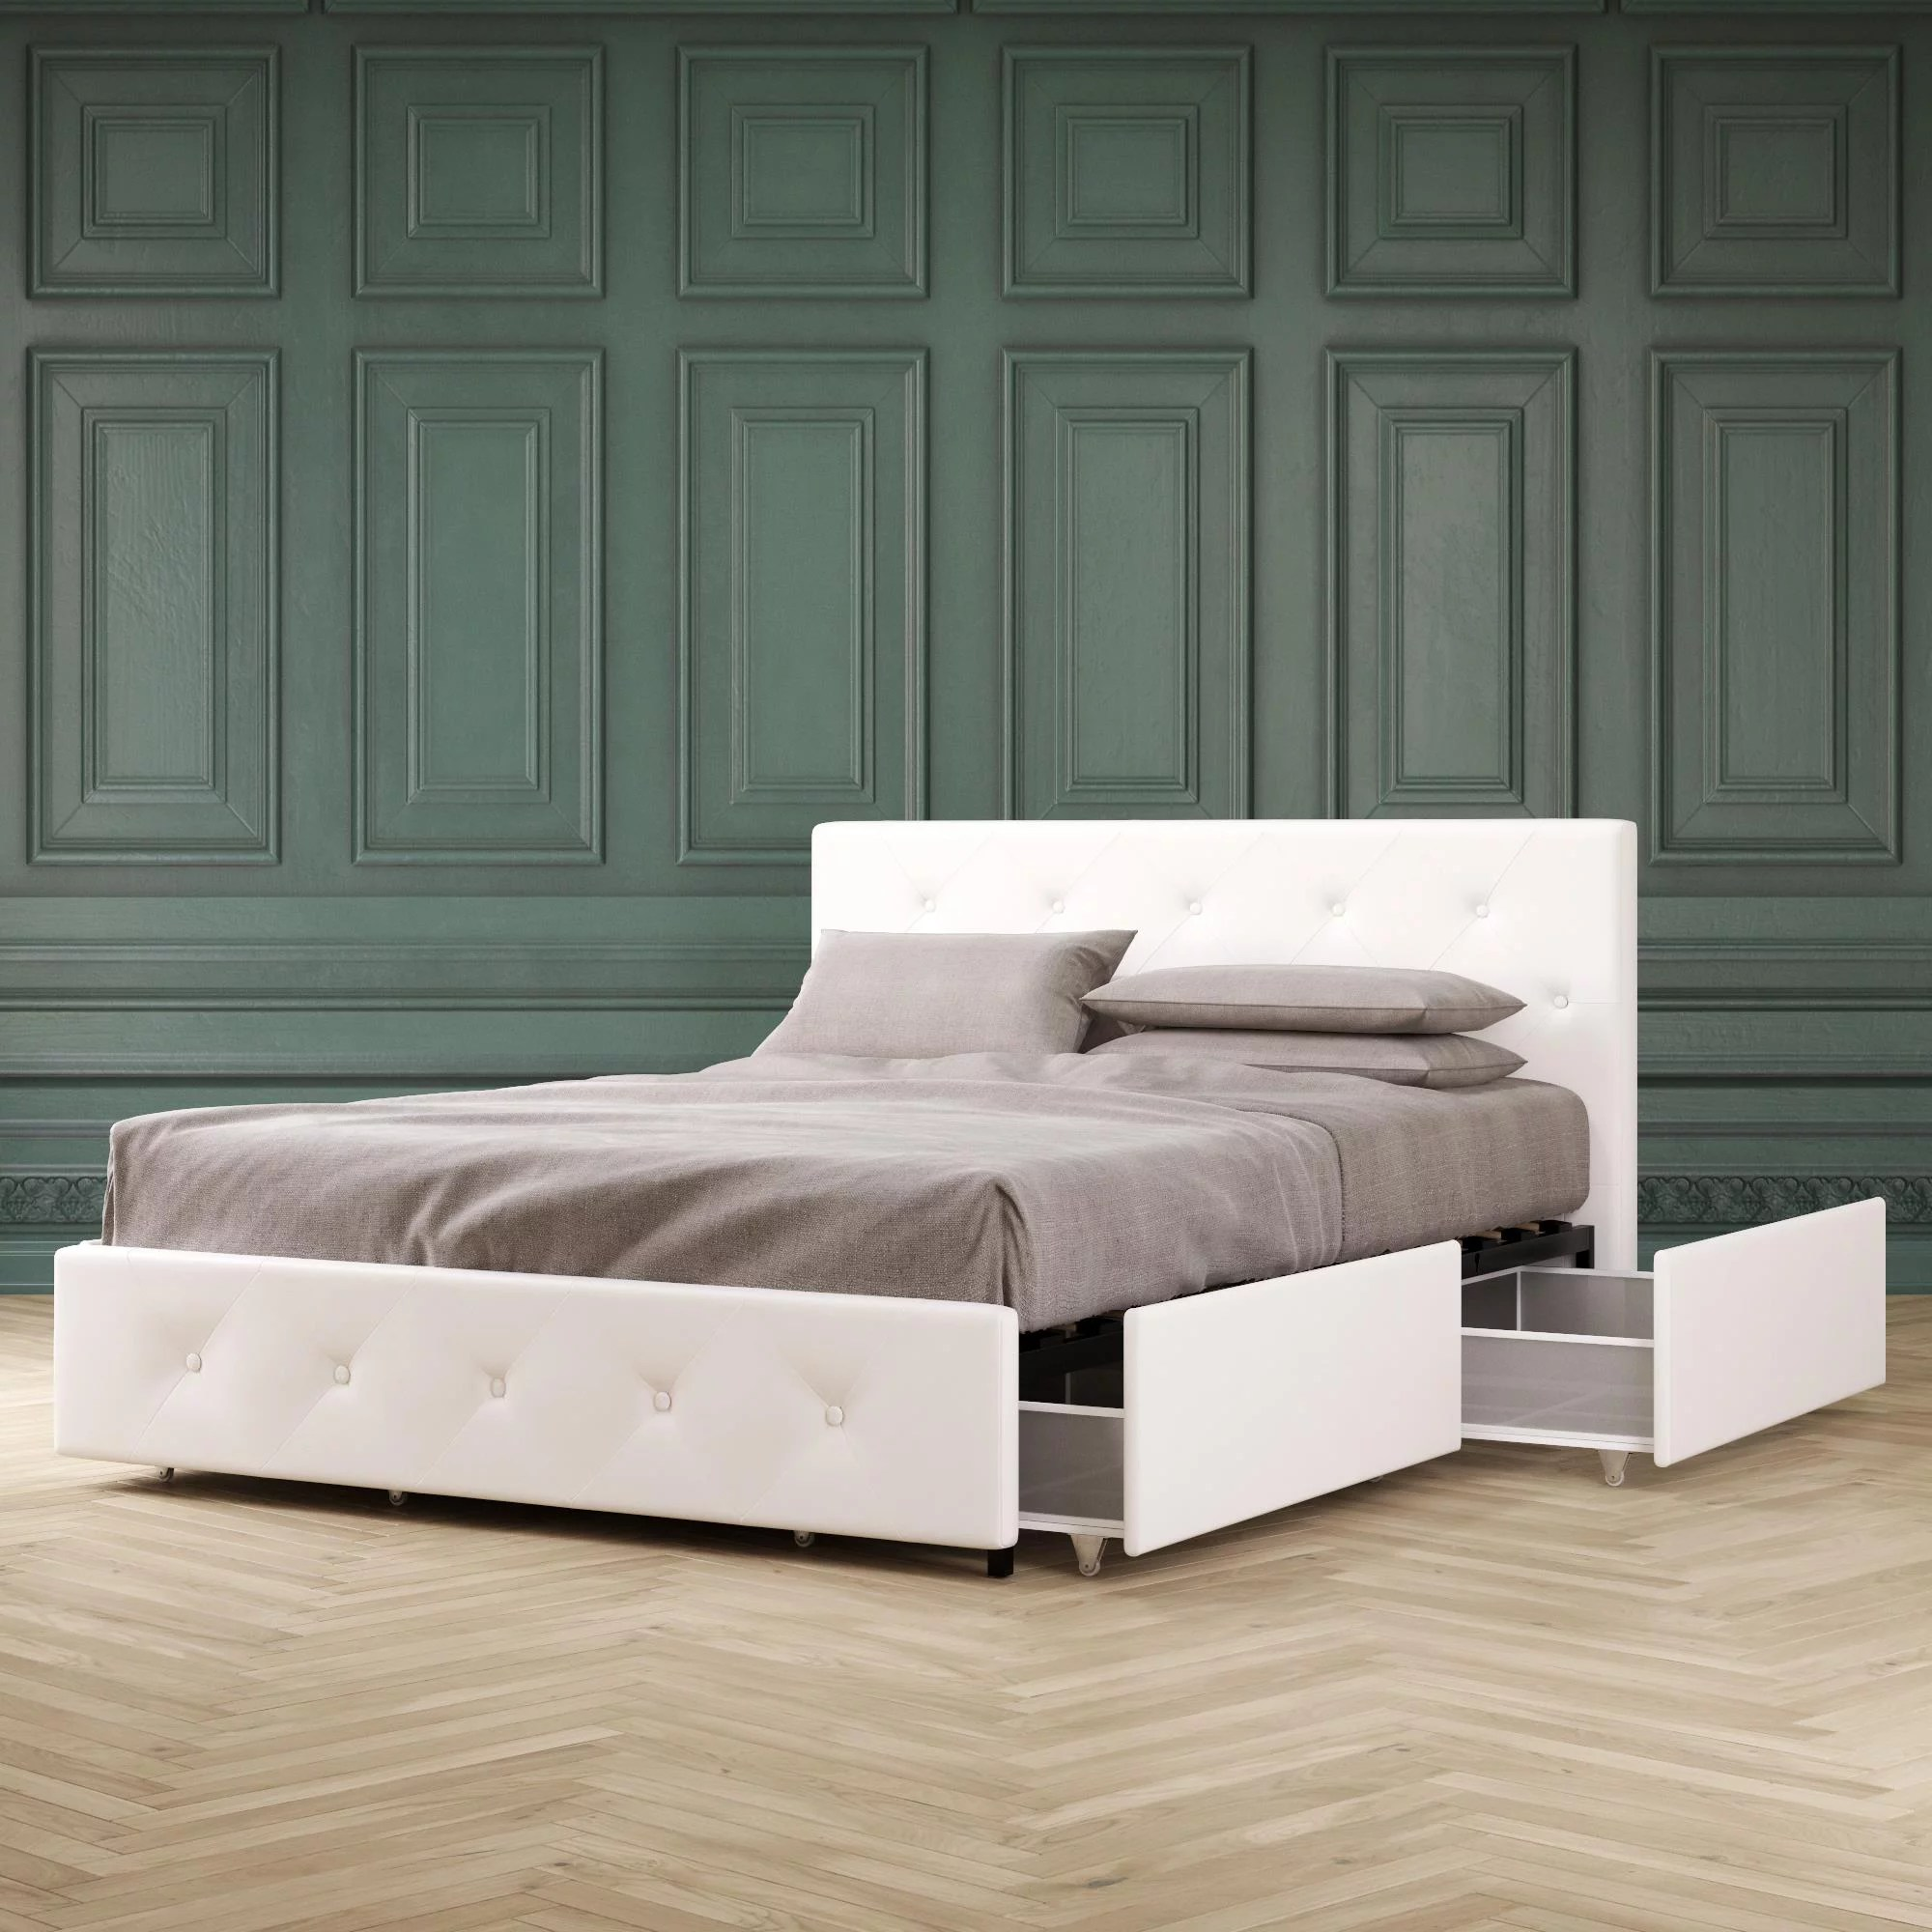 Dhp Dean Upholstered Bed With Storage White Faux Leather Queen Walmart Com Walmart Com